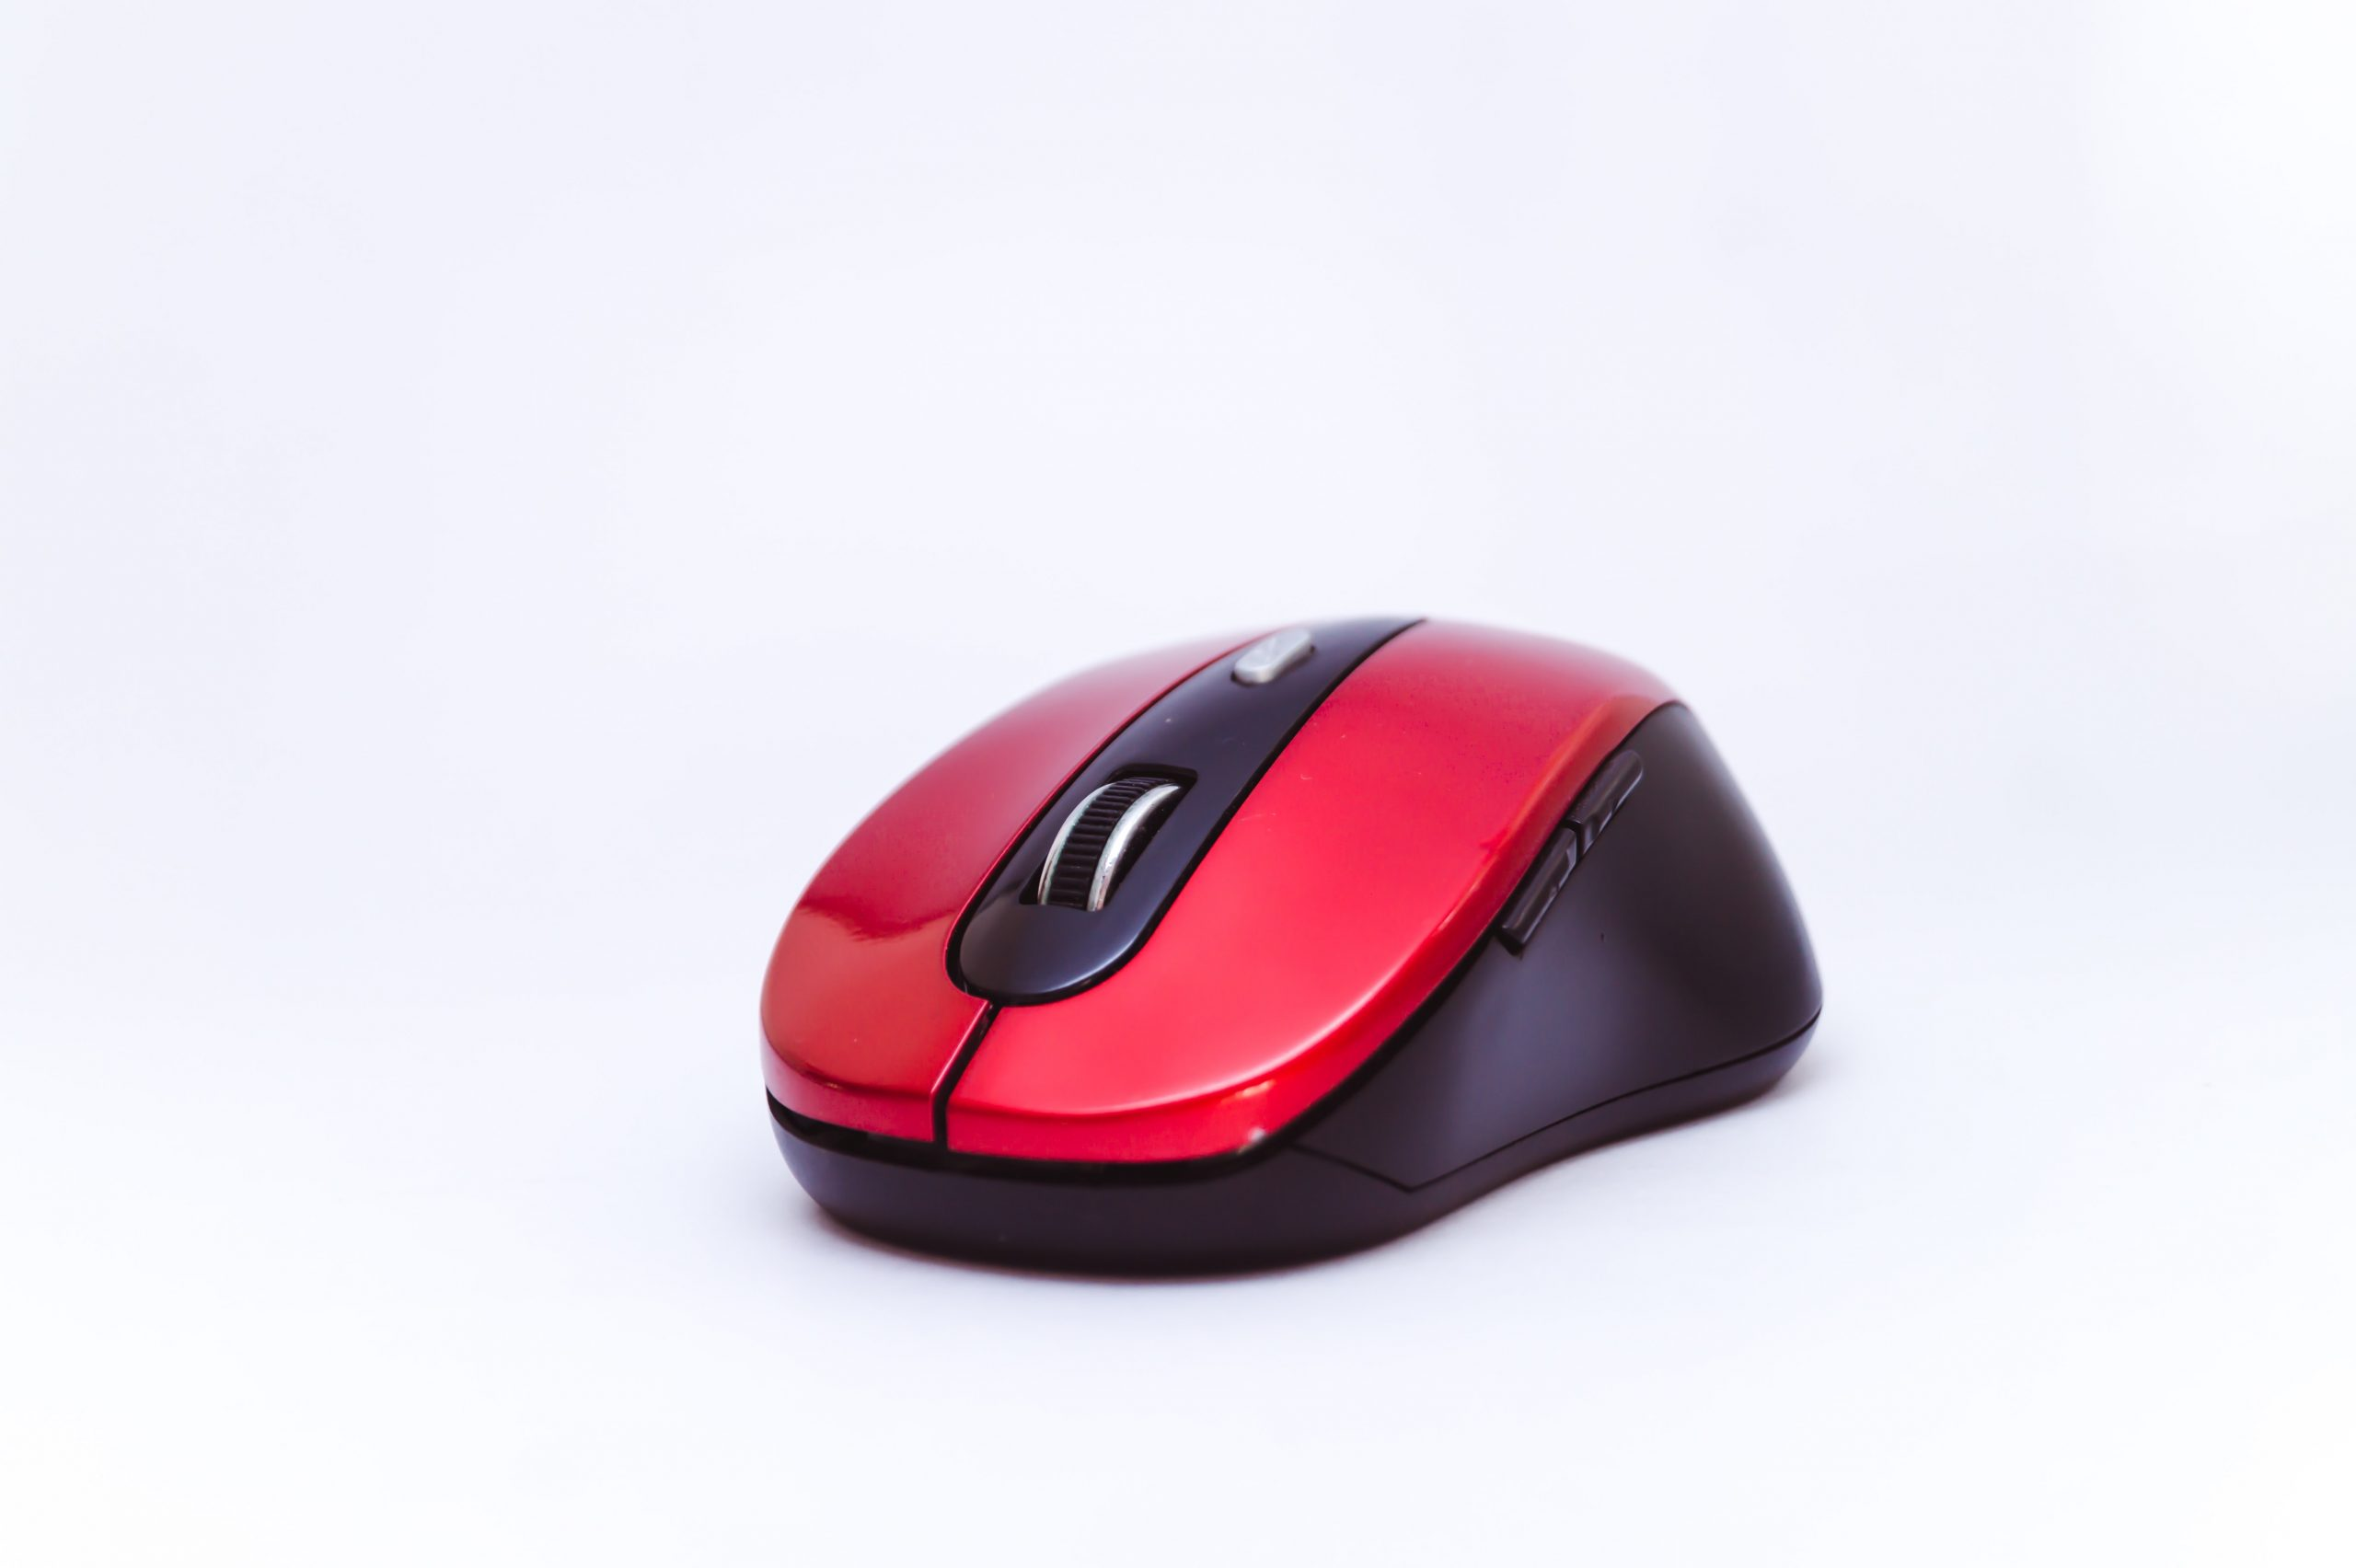 Mouse_scroll_speed